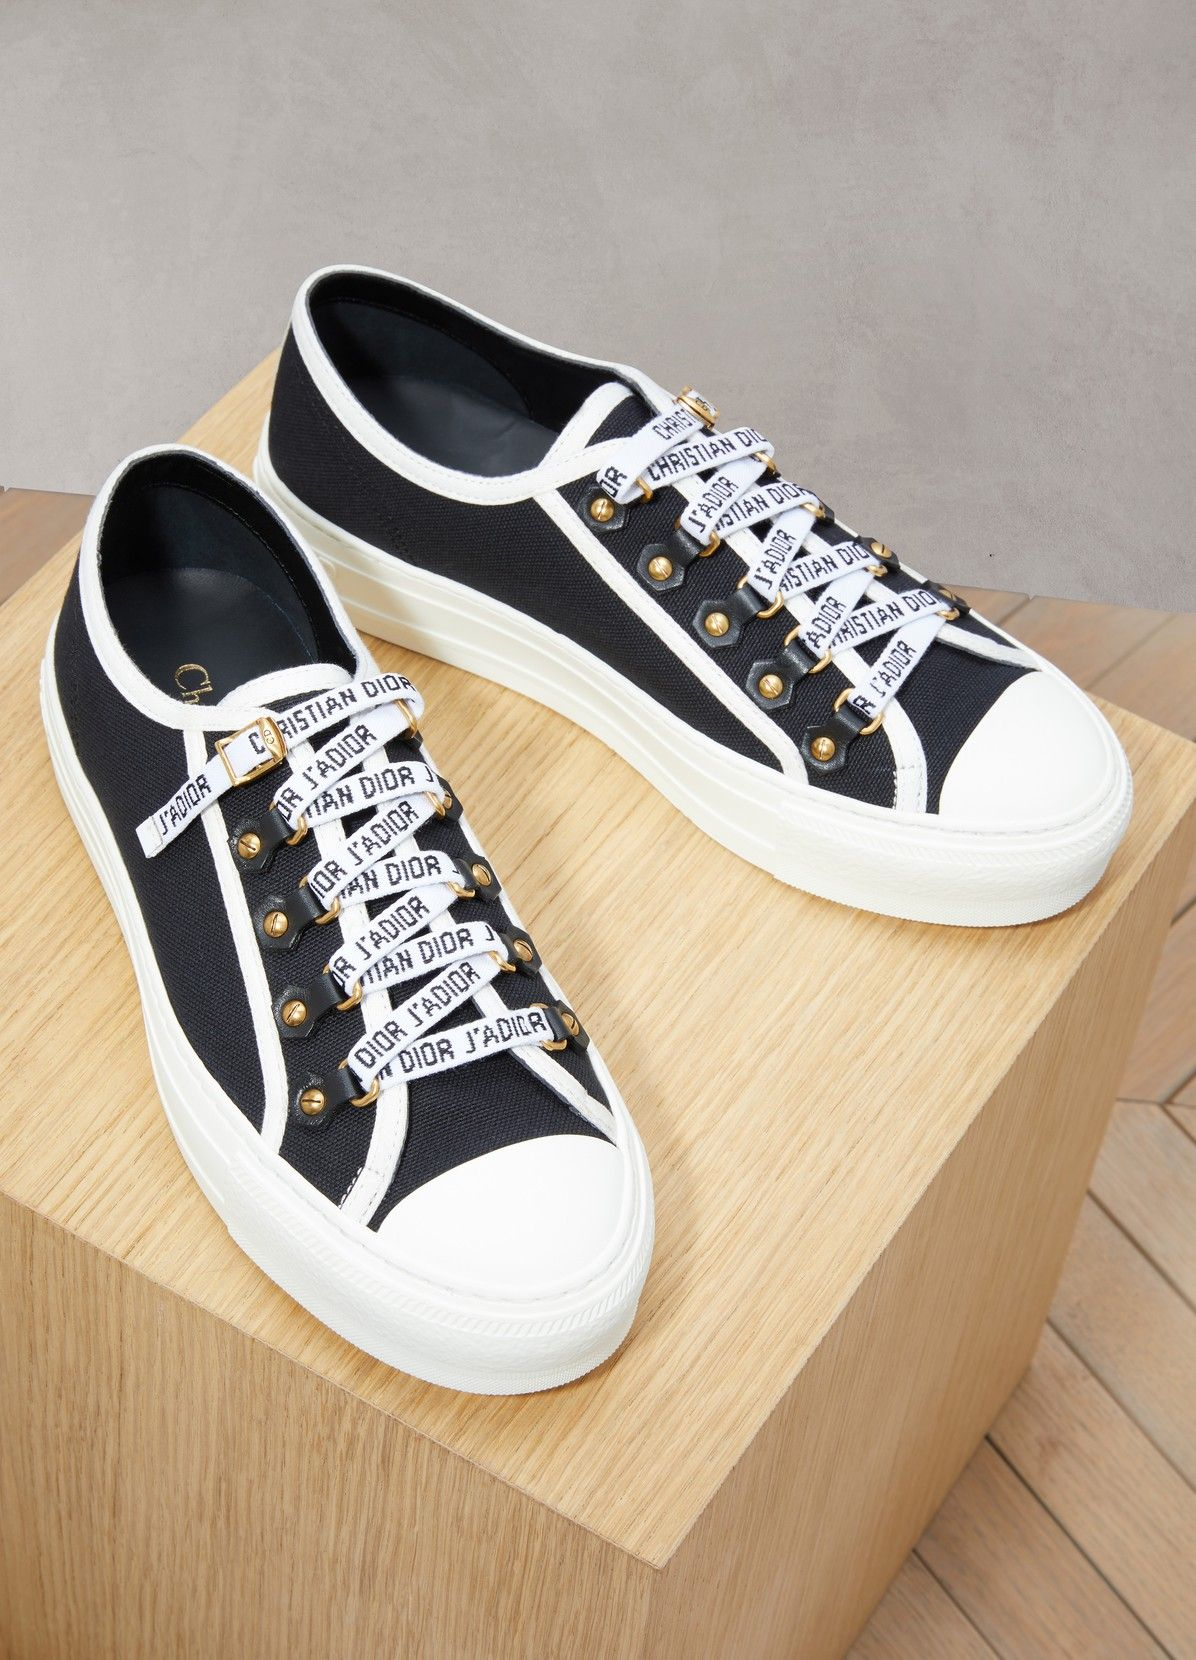 3593b9a3883f Walk n Dior low-top sneakers в 2019 г.   Shoes   Sneakers, Dior и Shoes